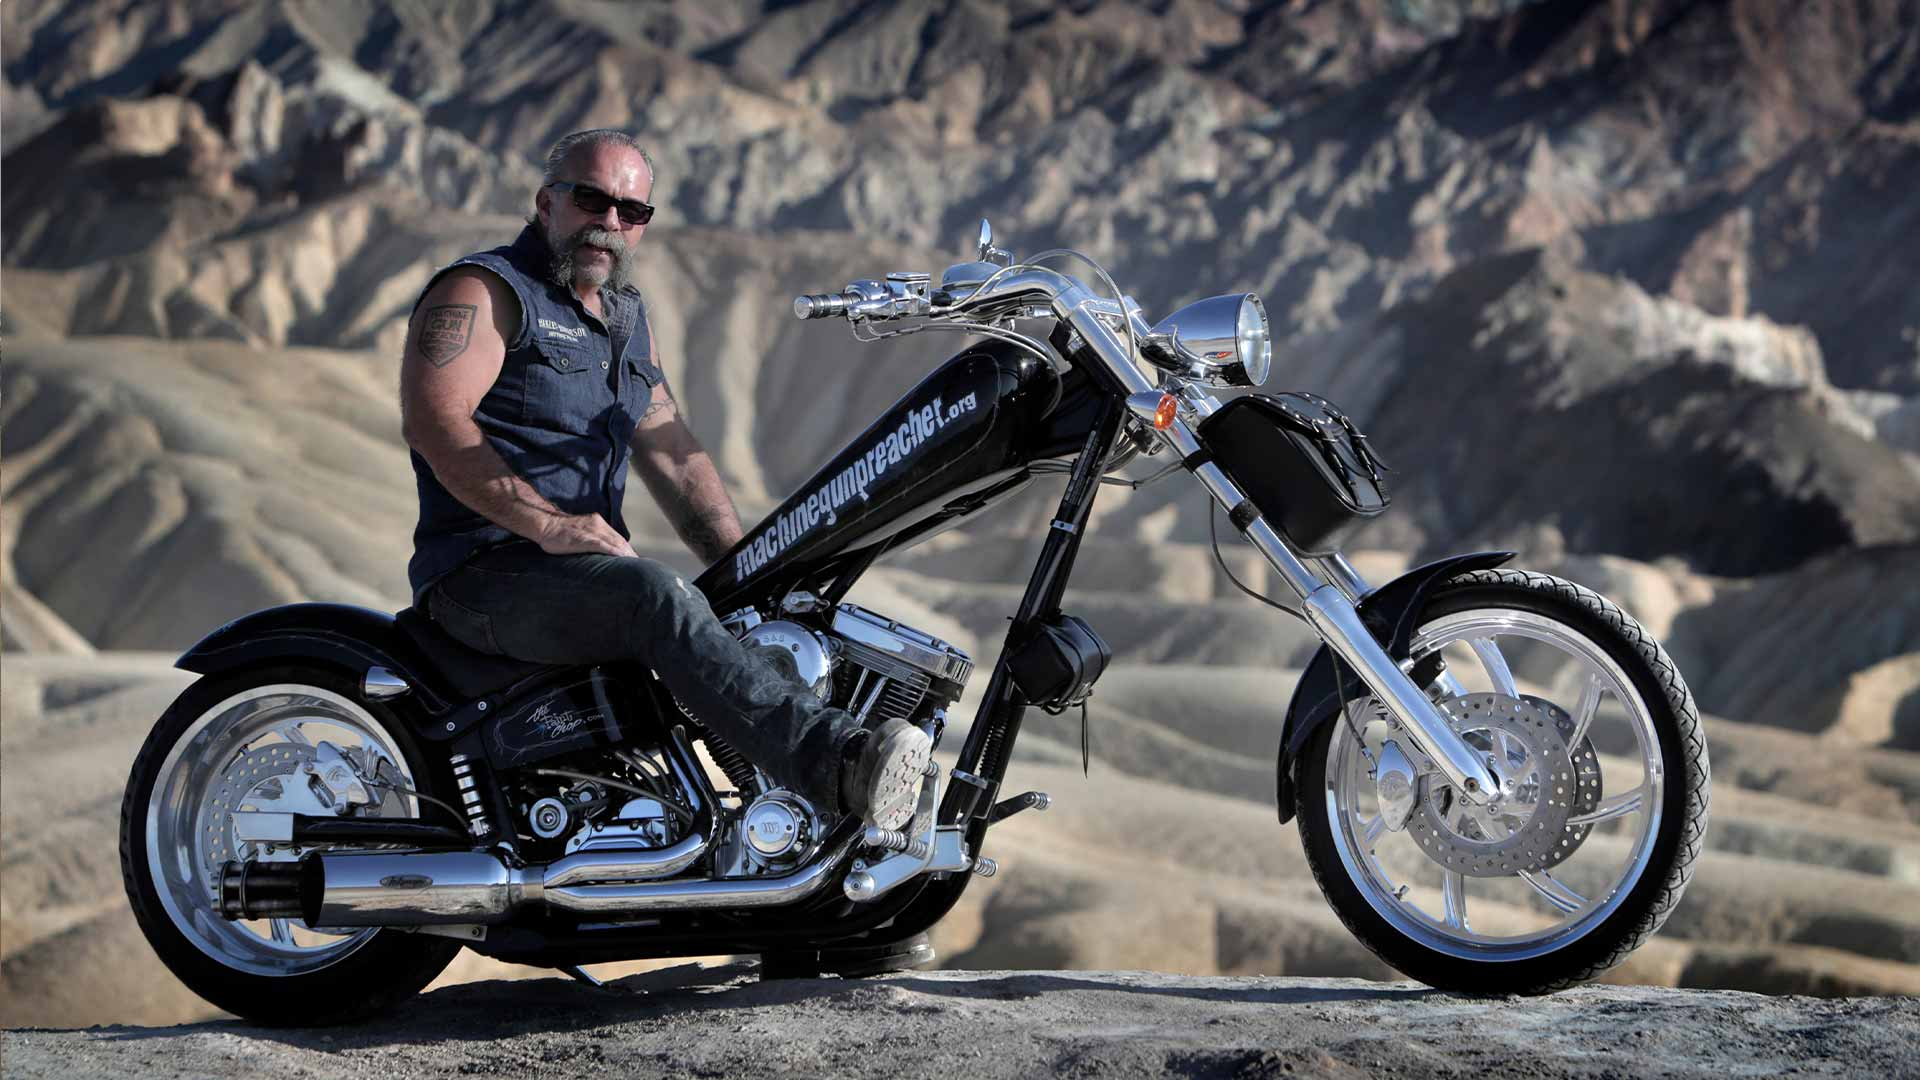 Sam Childers on his bike